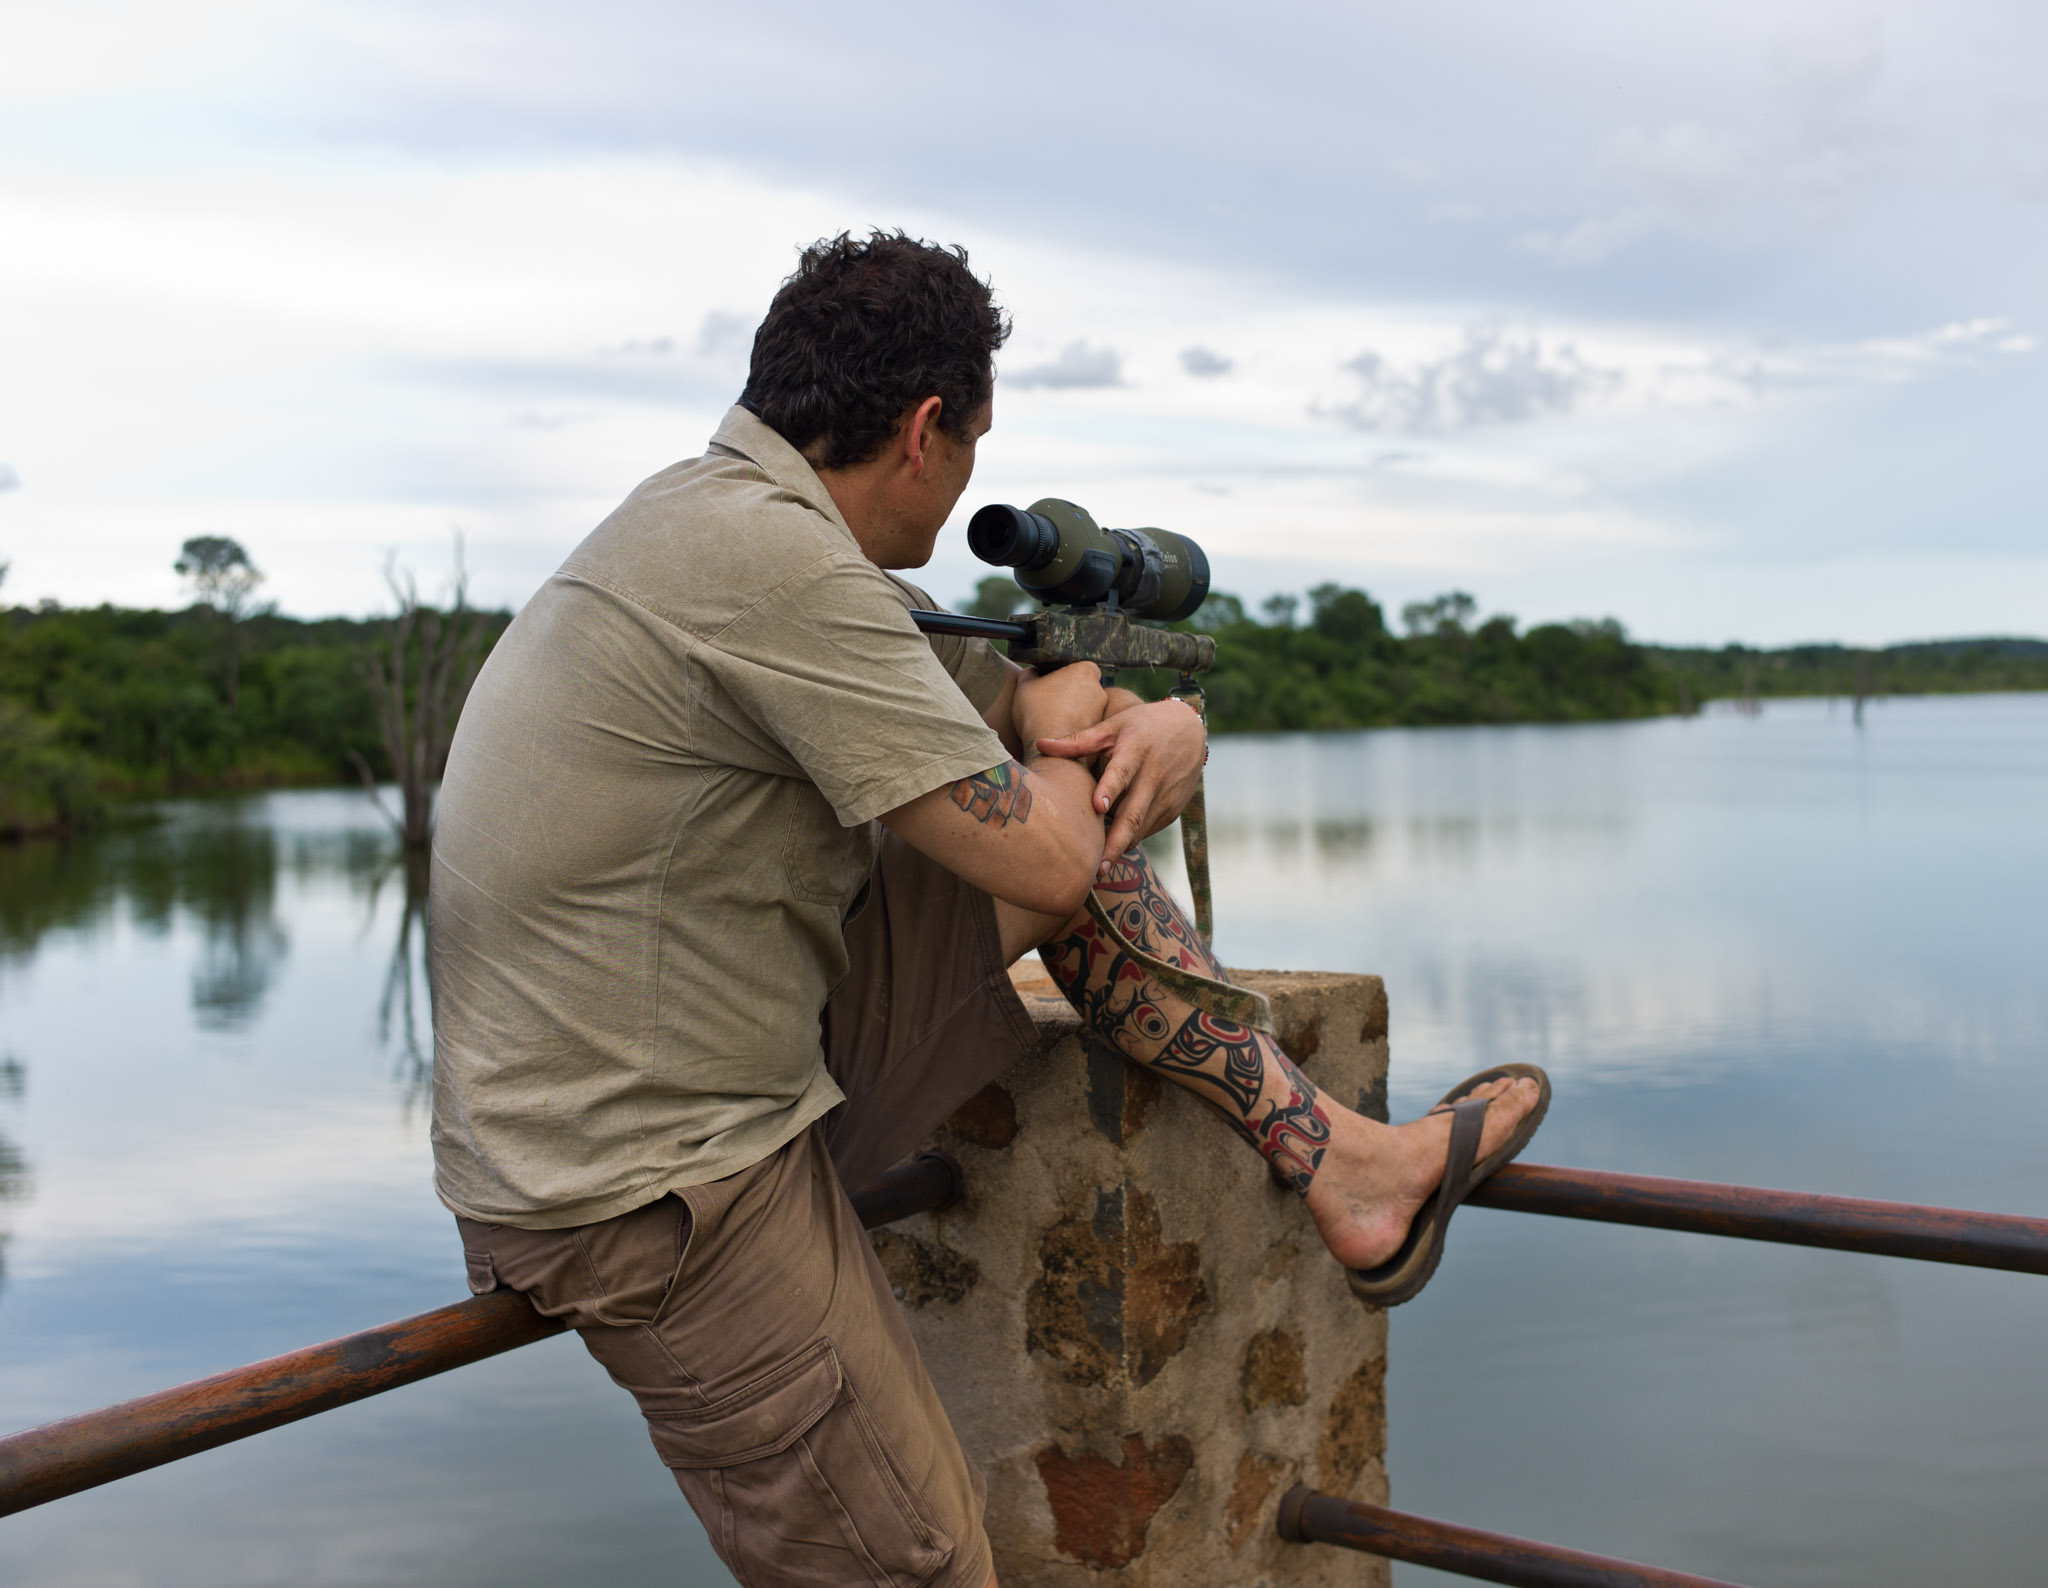 Damien Mander uses a spotting scope to keep watch over the Zimbabwe reserve he helps protect. Photograph by Erico Hiller